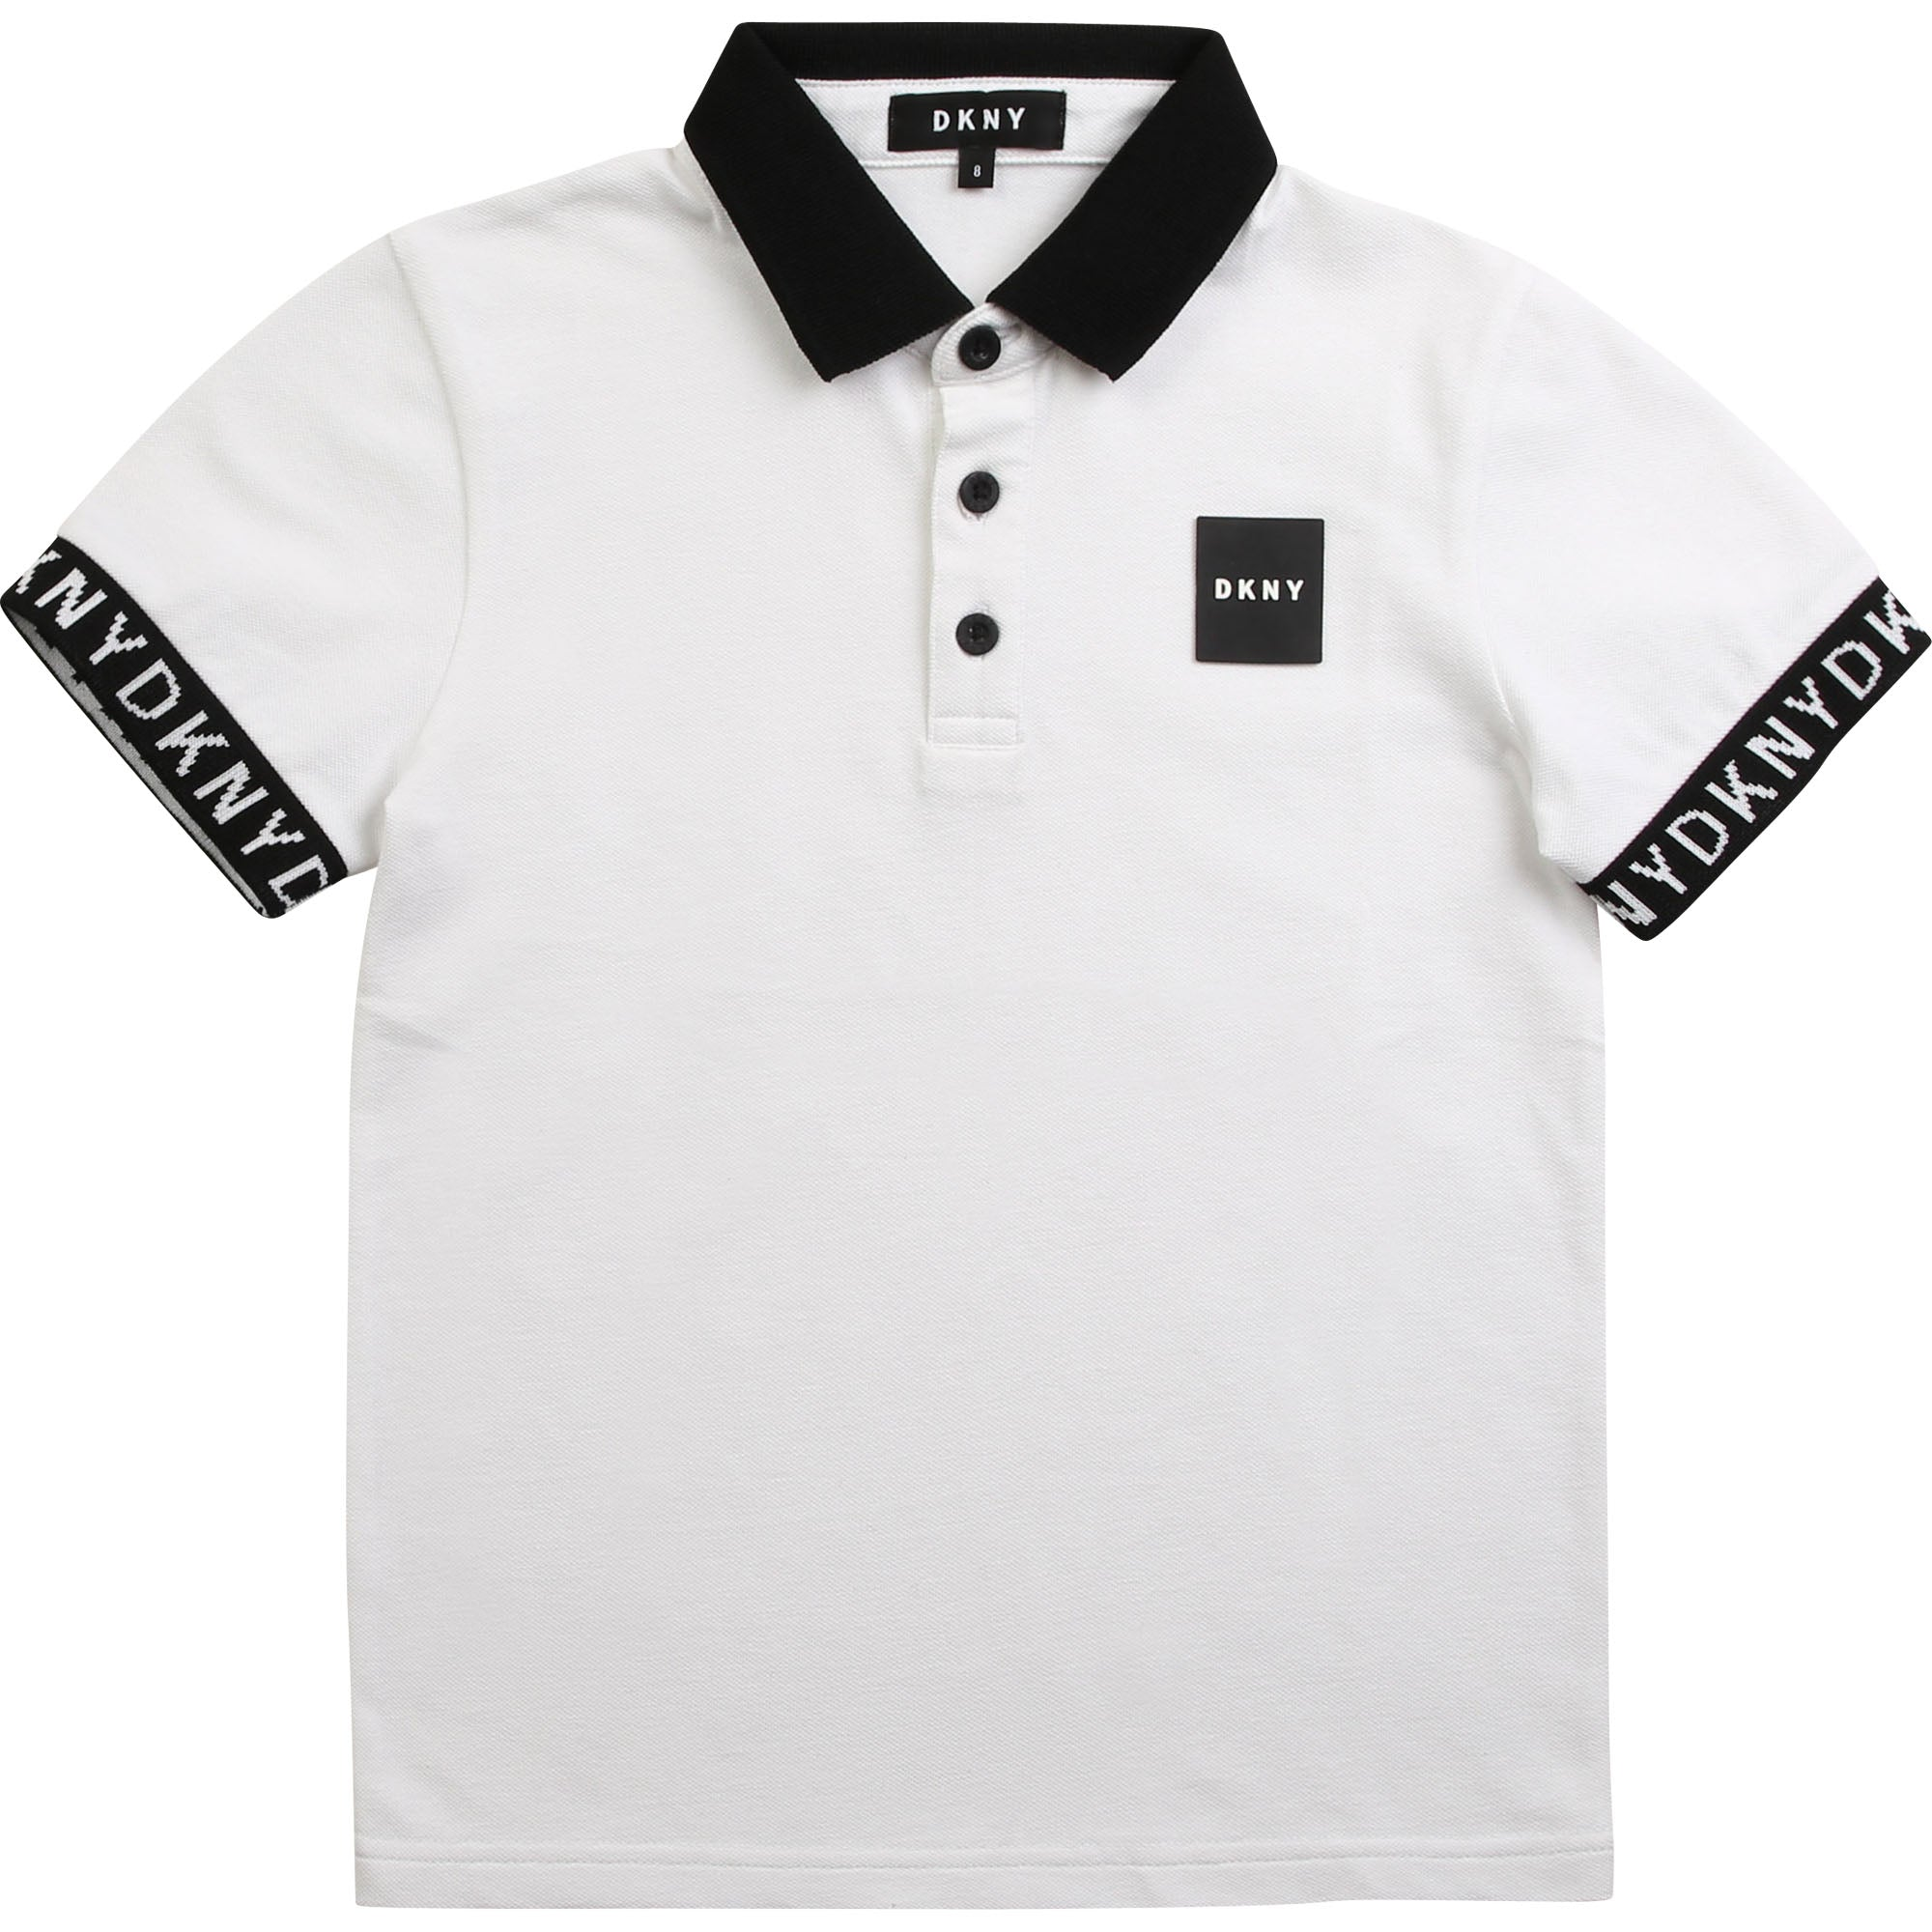 White Tape Sleeved Polo Shirt